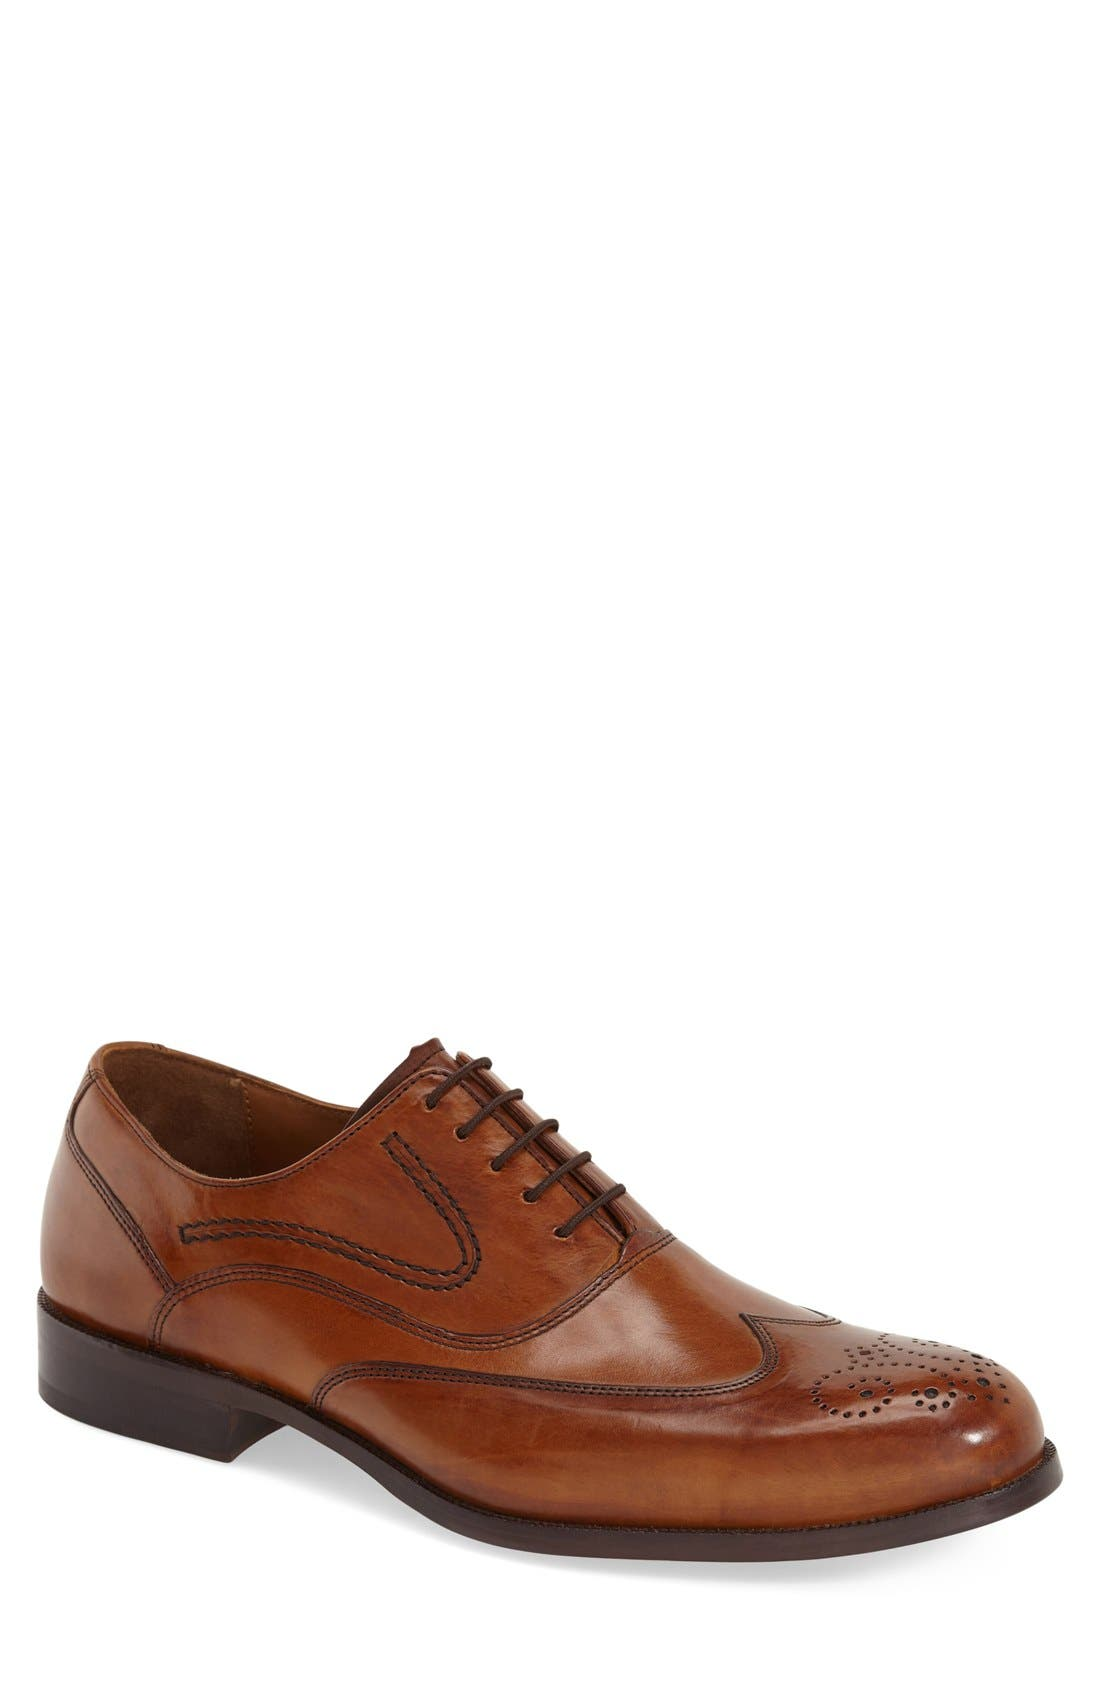 'Stratton' Wingtip Oxford,                             Main thumbnail 1, color,                             240